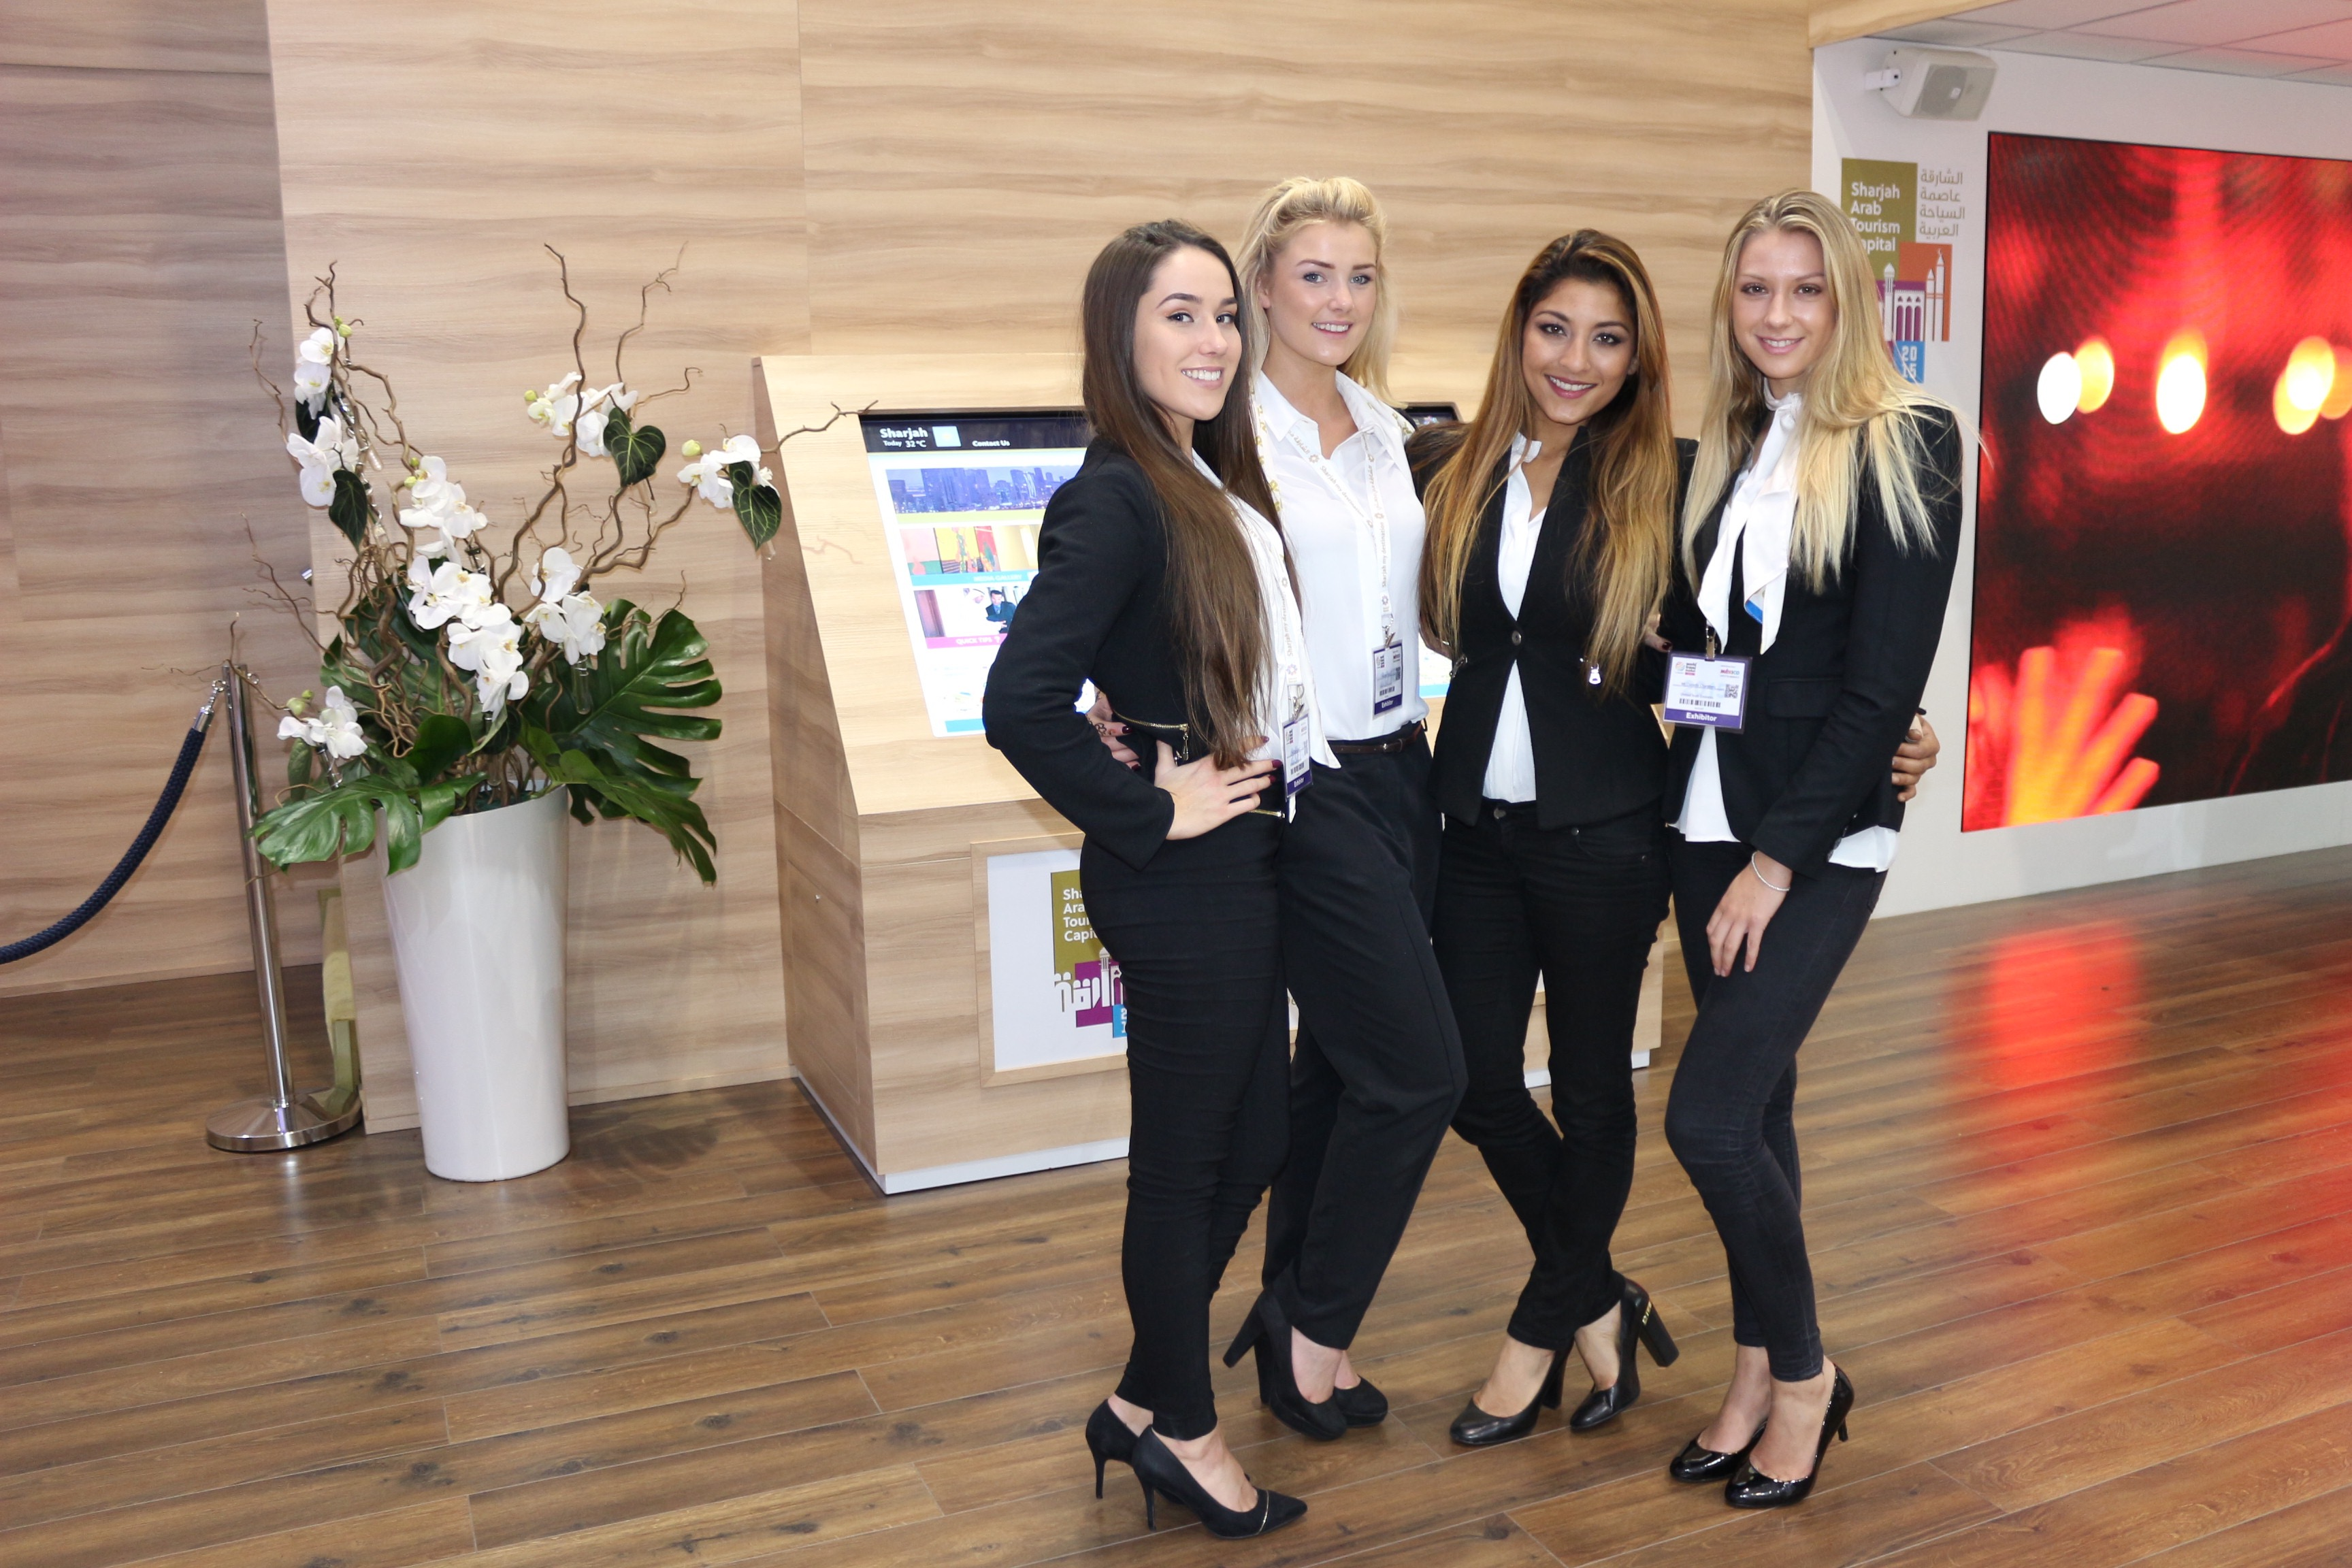 Exhibition Stand Builders Sharjah : Exhibition stand hostesses exhibition girls limited exhibition